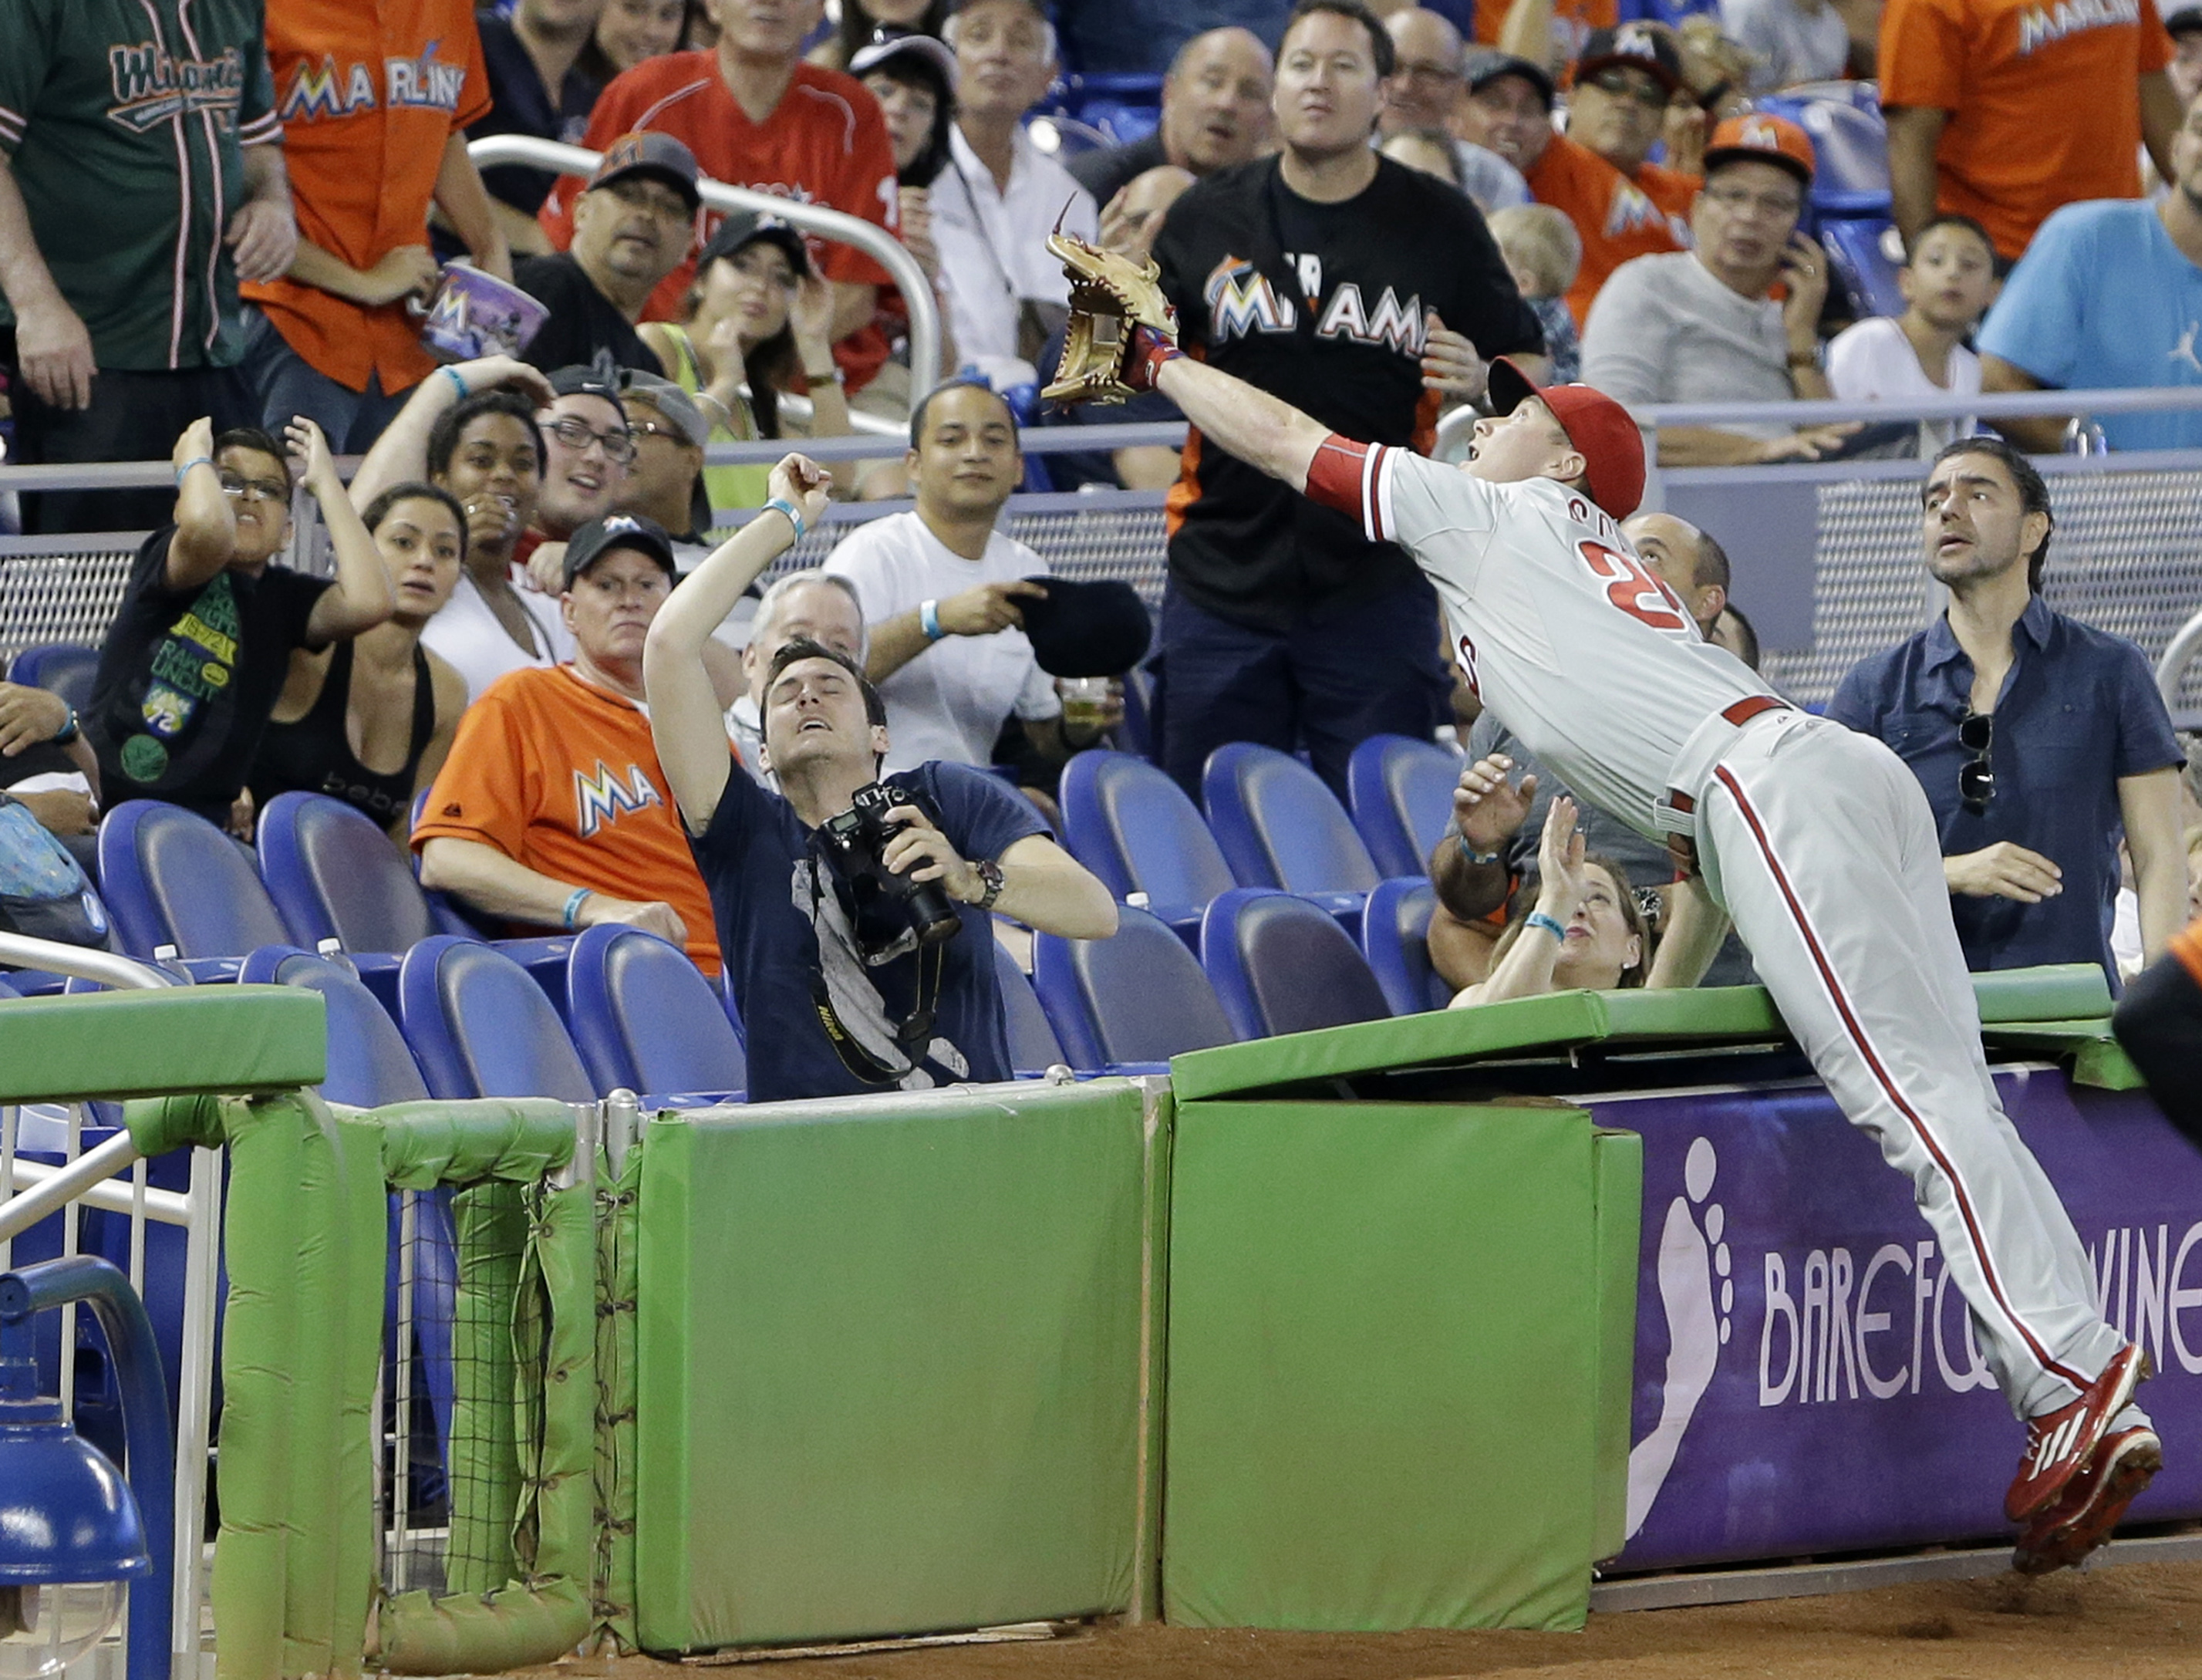 Philadelphia Phillies third baseman Cody Asche dives for a ball as he attempts to catch a foul hit by Miami Marlins' Adeiny Hechavarria during the fourth inning of a baseball game, Sunday, May 3, 2015, in Miami. (AP Photo/Wilfredo Lee)